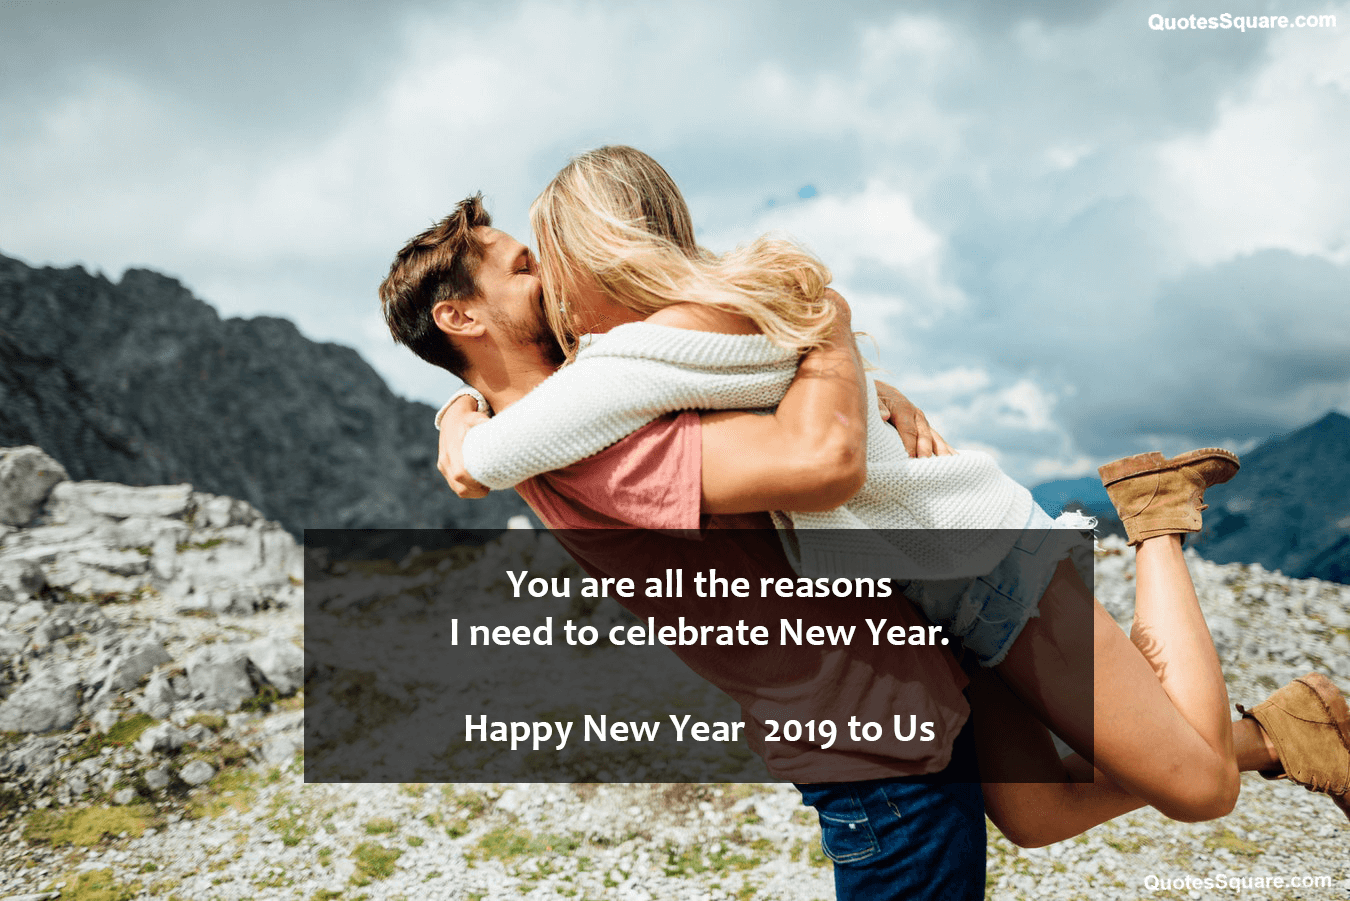 Cute new year 2019 love wishes for him her